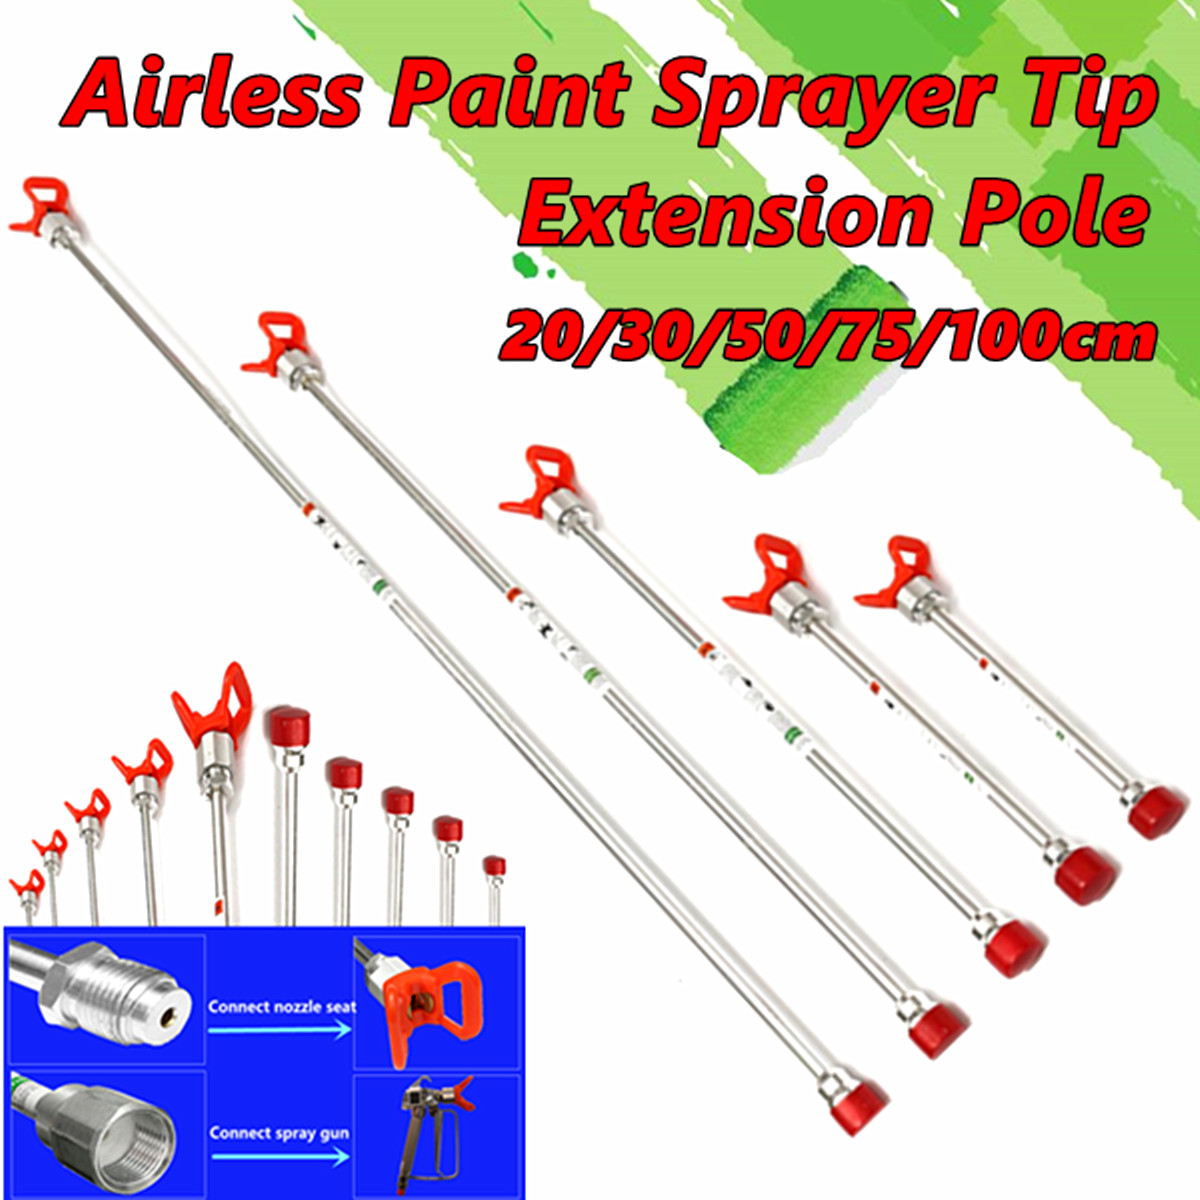 Aluminium Airless Paint Spray Gun Sprayer Extension Pole with Tip Guard Nozzle Seat, 20/30/50/75/100CM